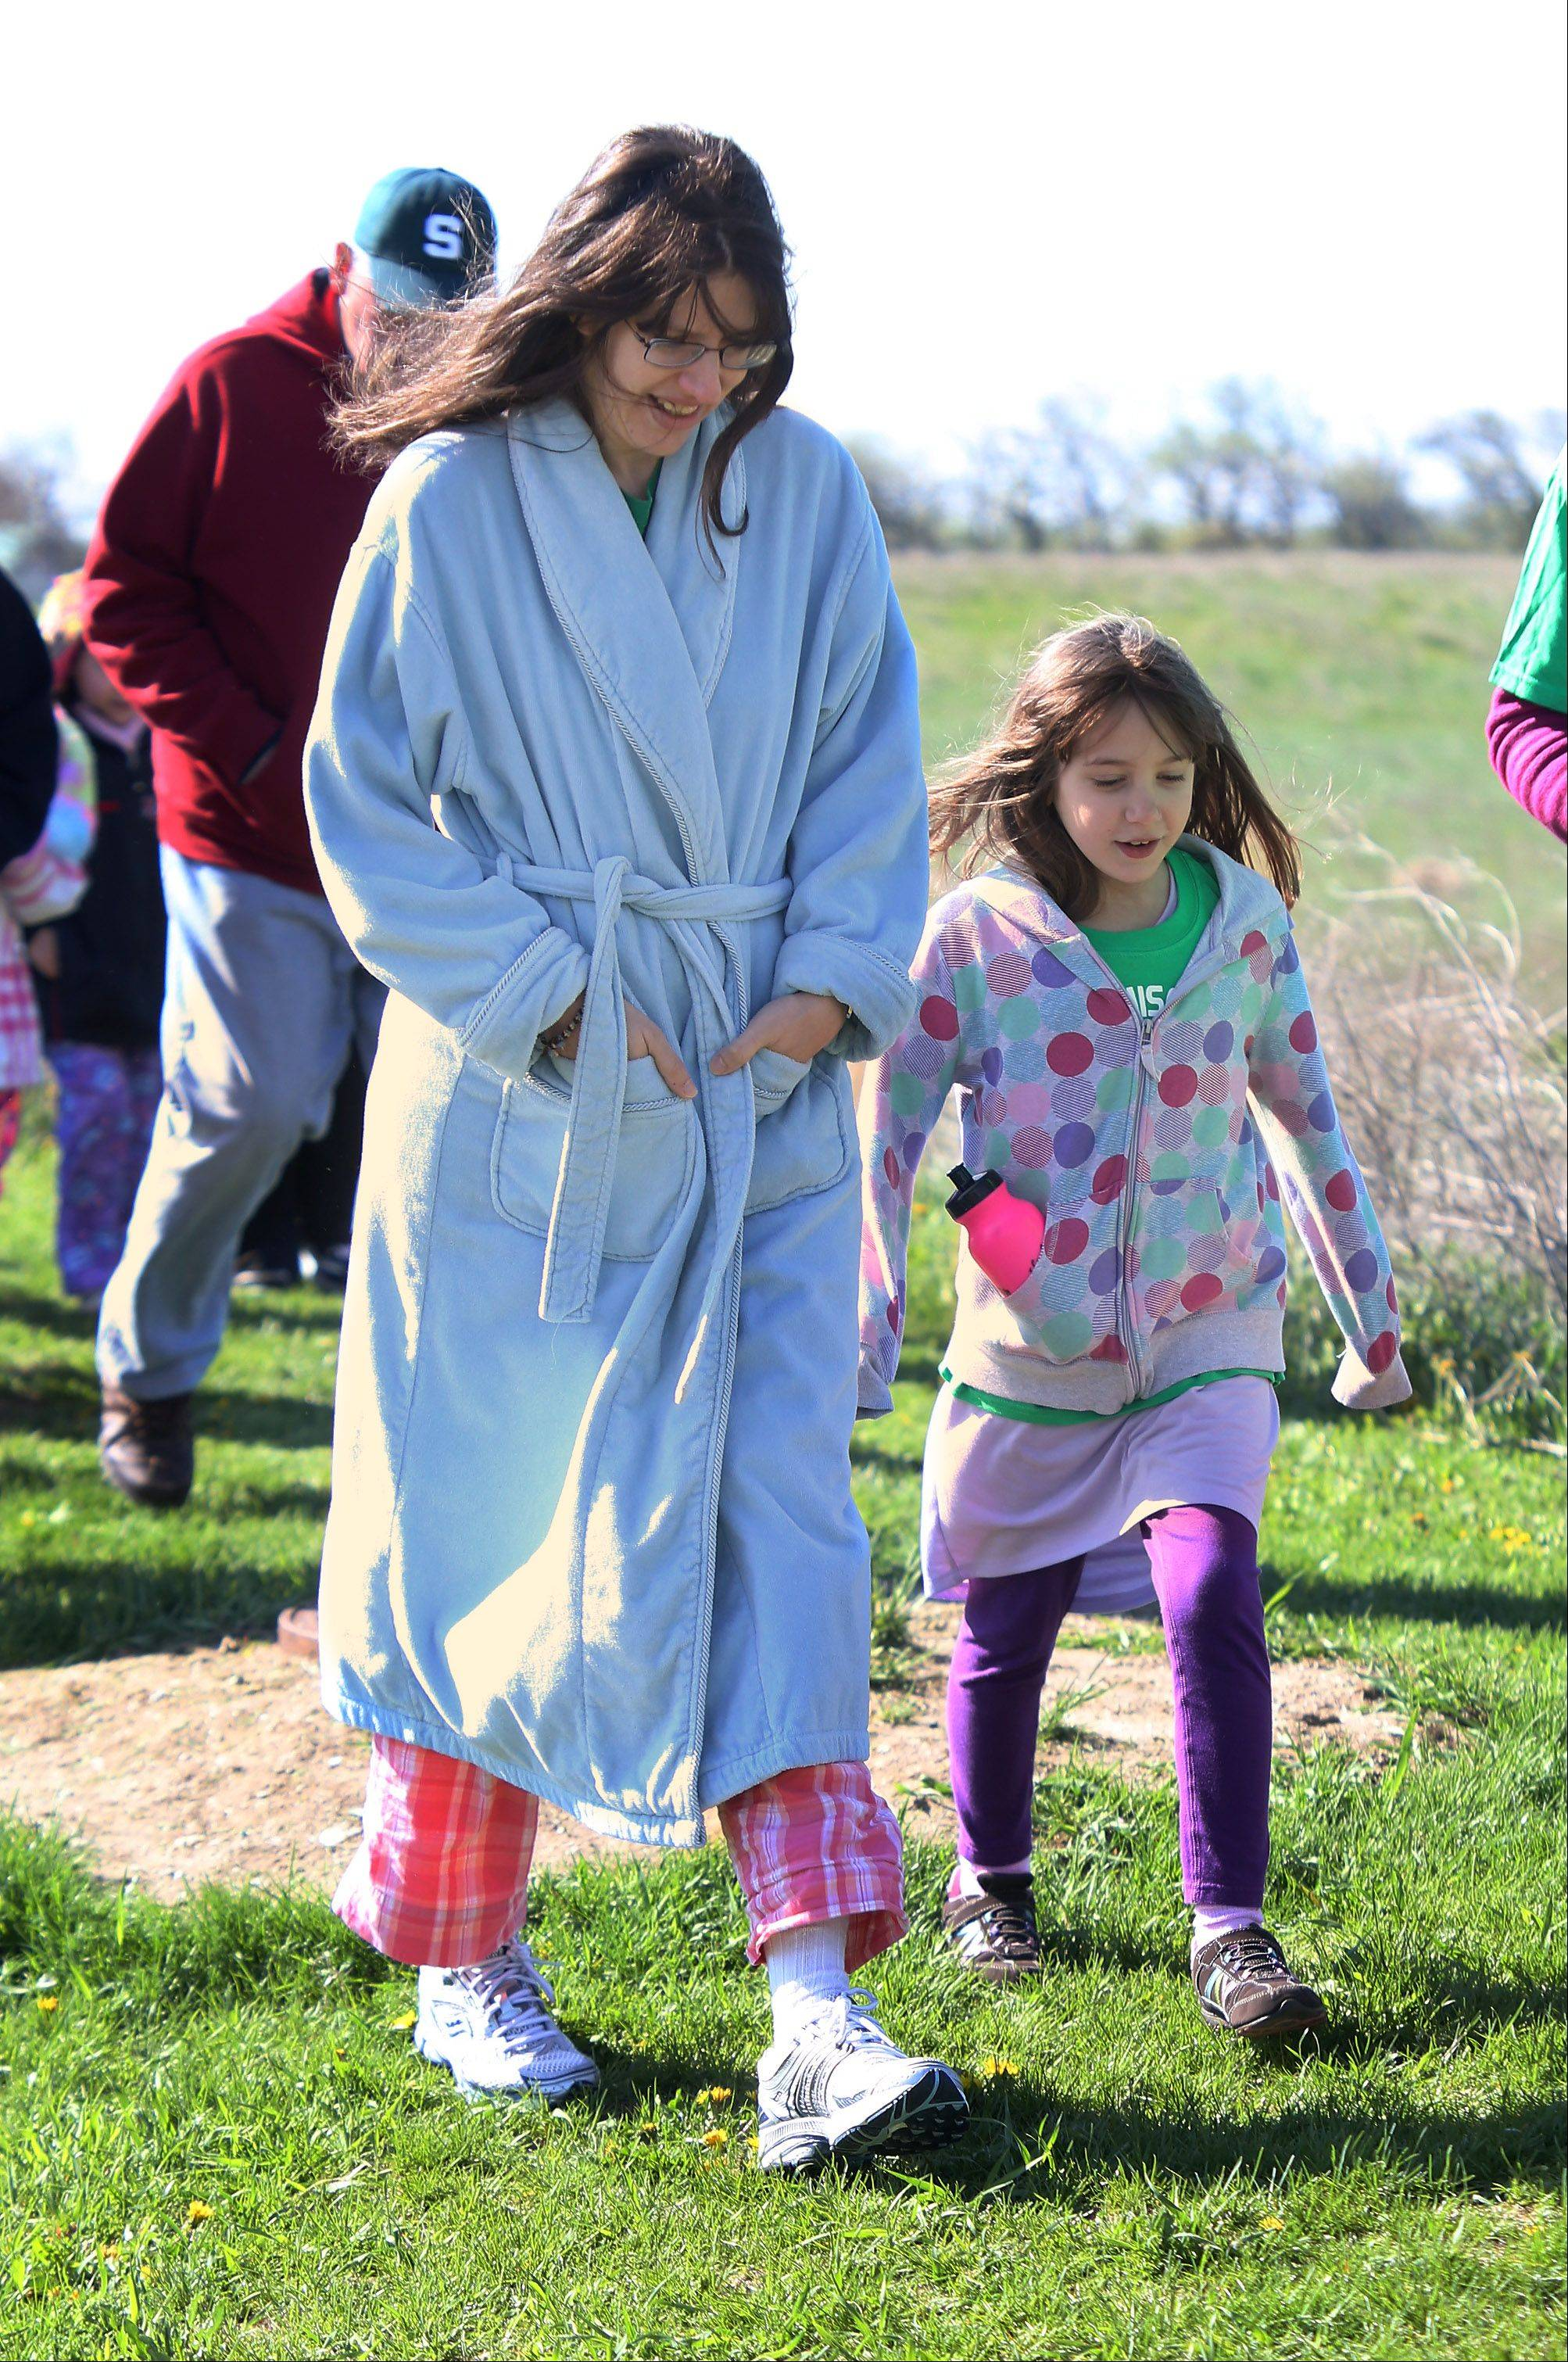 Irene Edgar, of Libertyville, walks with her daughter Gwen, 7, during the Second Annual Pinkie Promise Pajama Walk Sunday at Fremont Intermediate School in Mundelein.